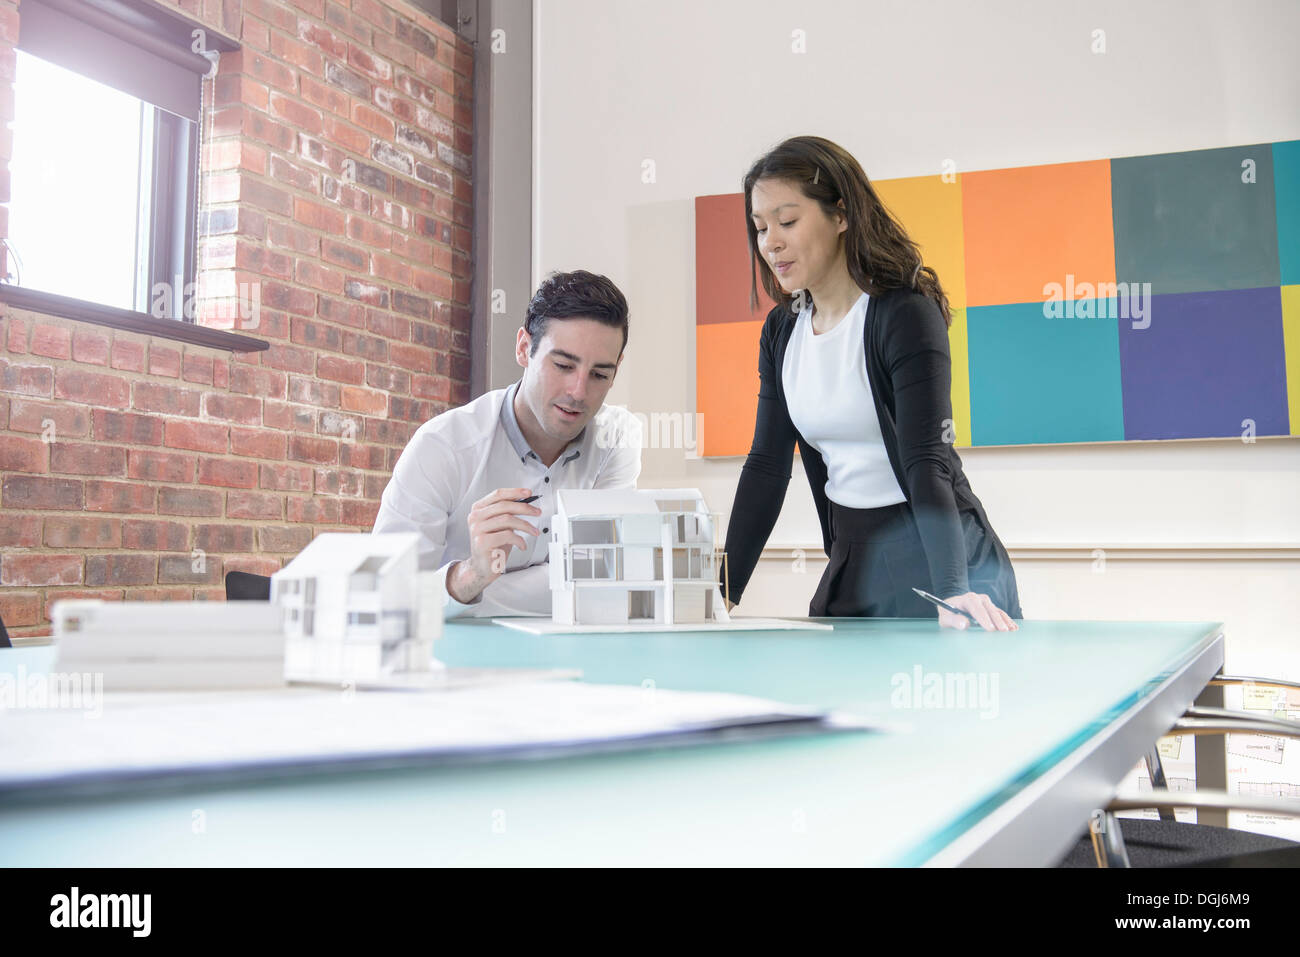 Architects working together on model of building in office - Stock Image